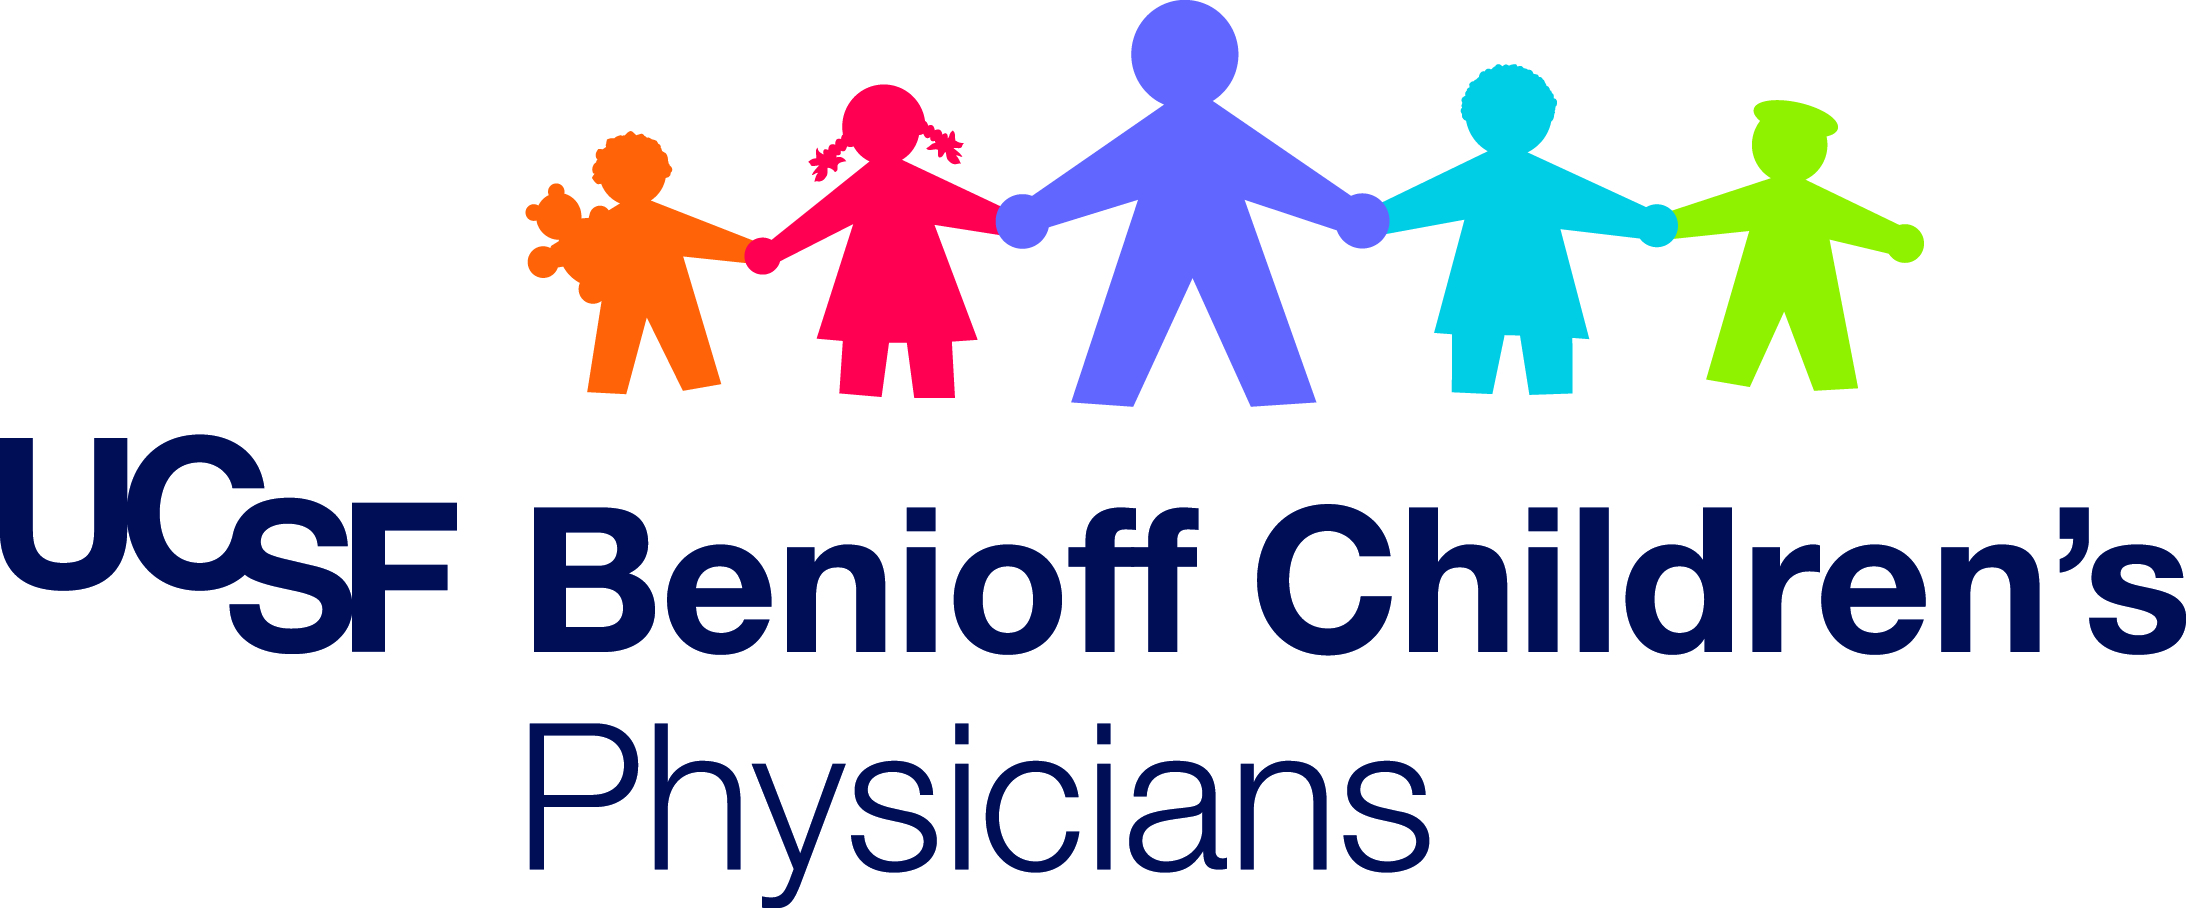 Affiliate Member UCSF Benioff Children's Physicians